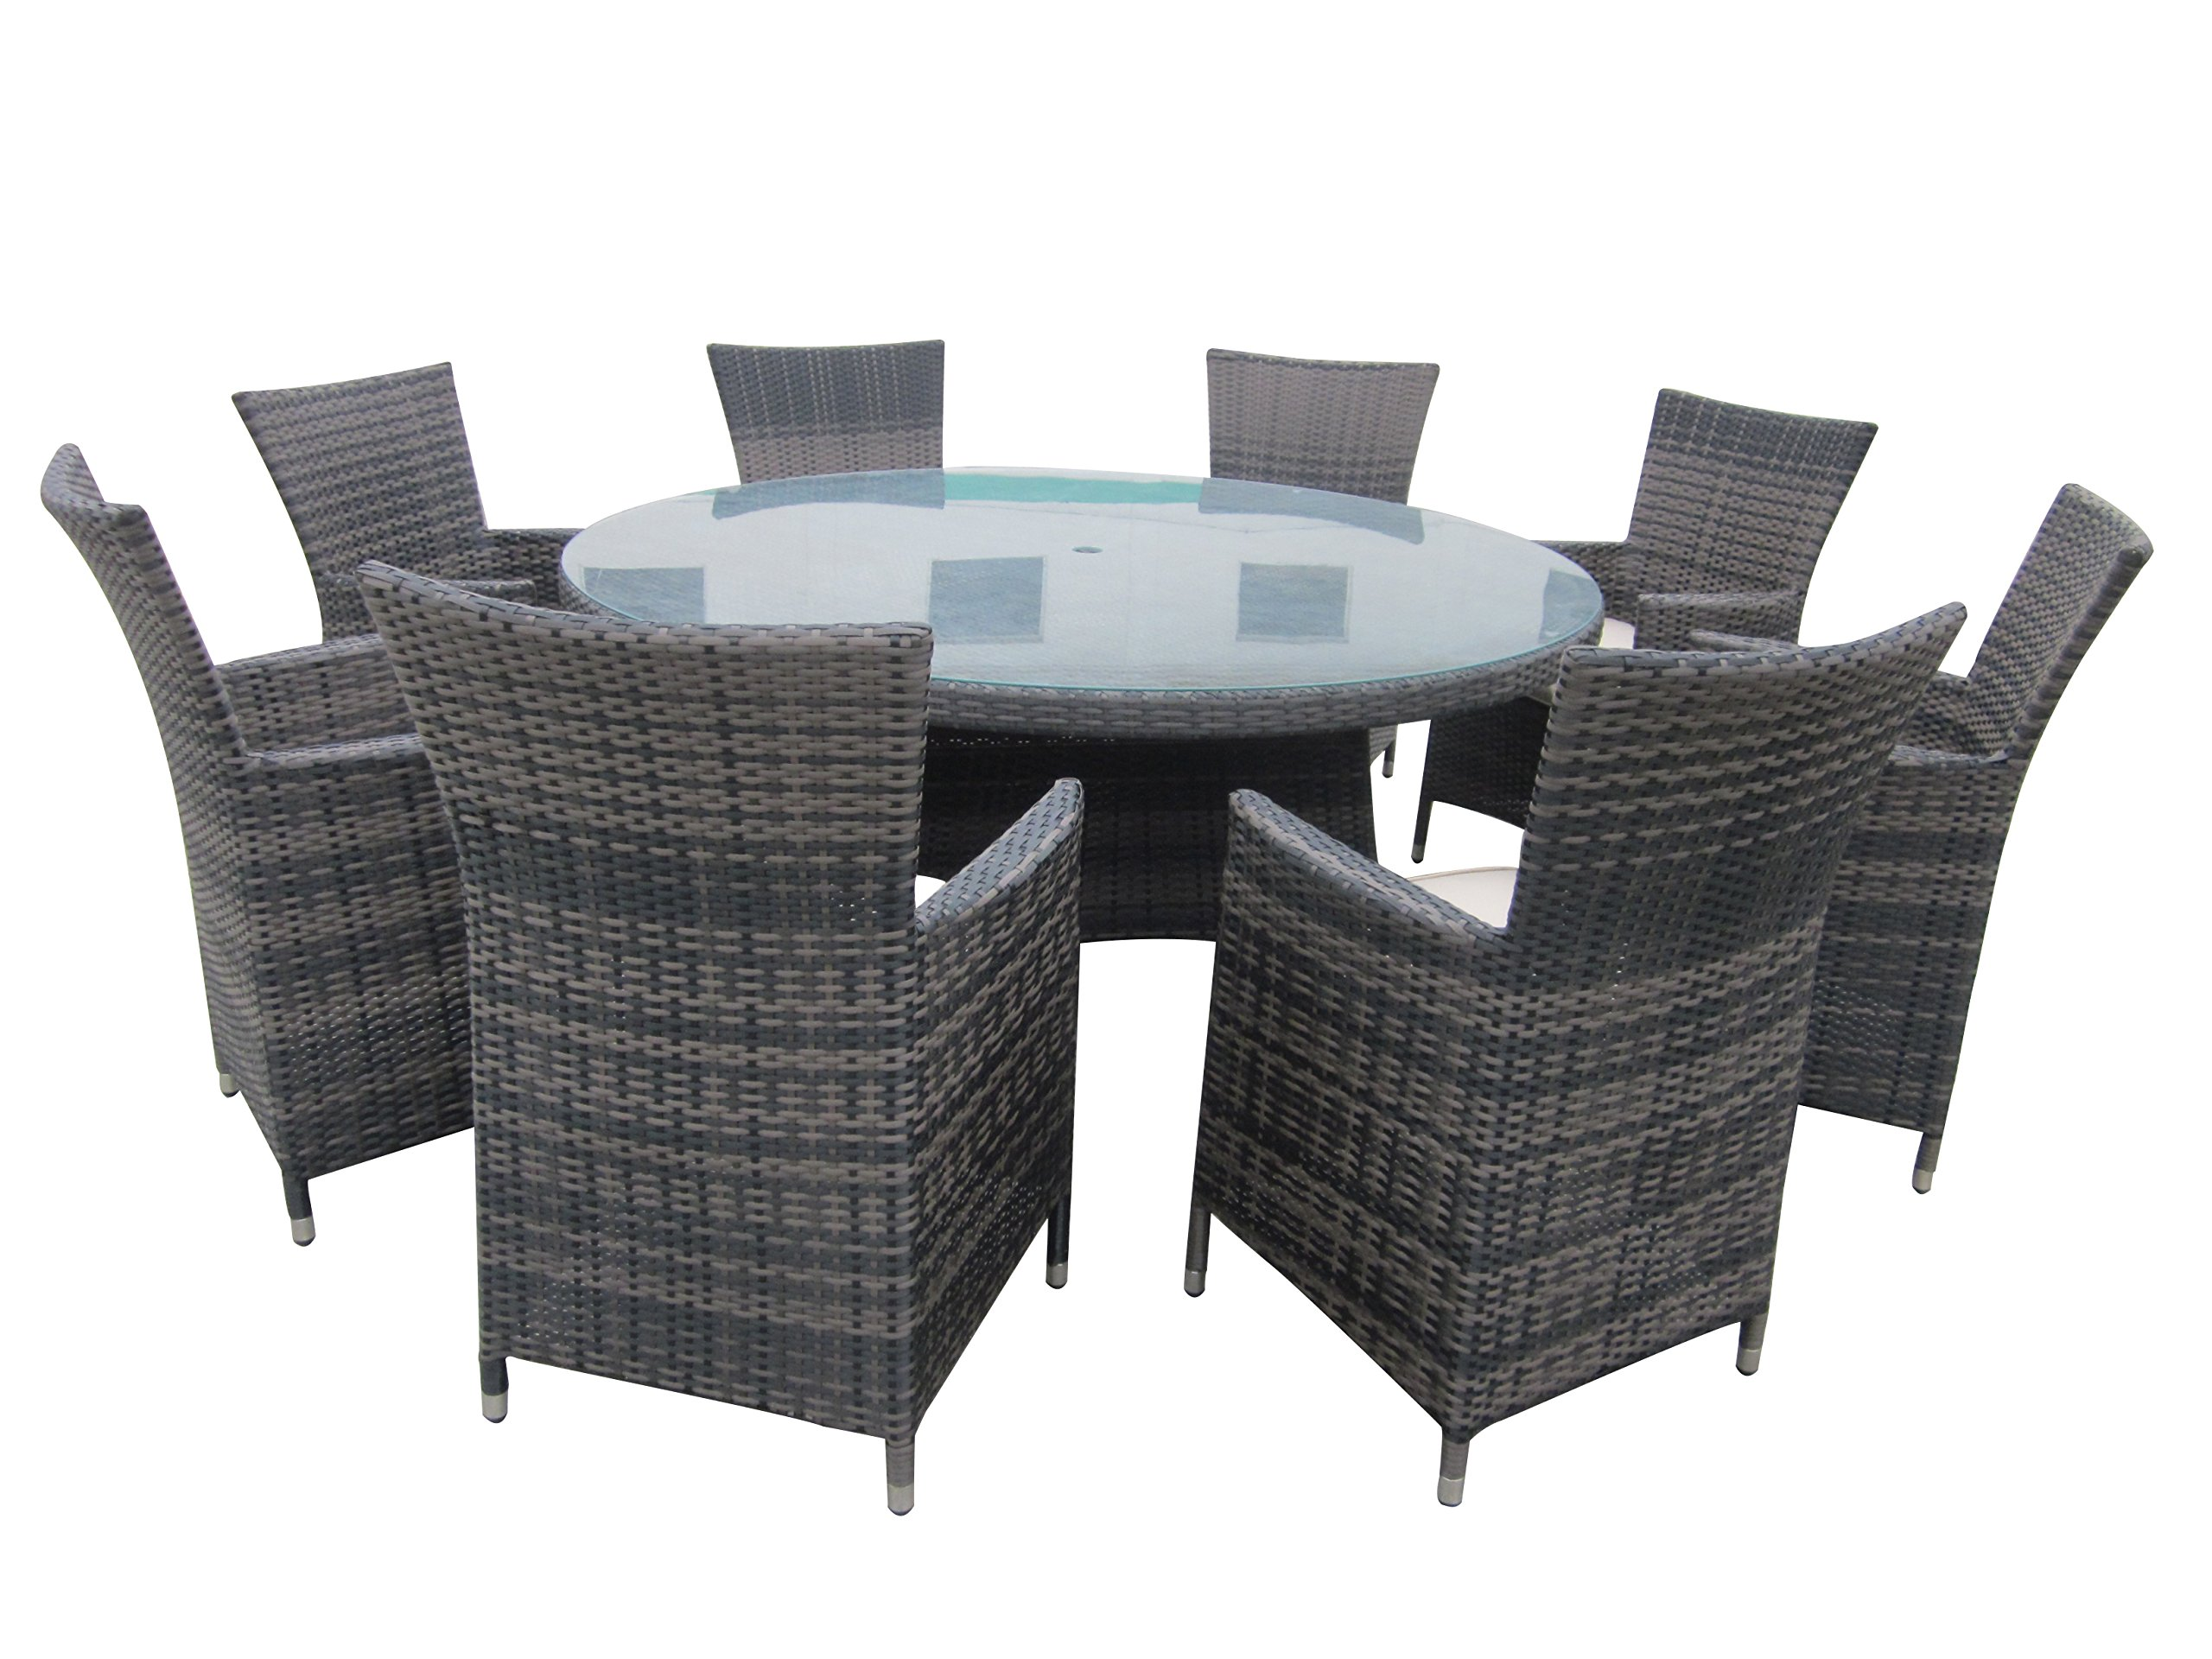 9 Piece Wicker Dining Sets, Patio Round Dining Set - Taupe - Aluminum frame: resist warping, twisting, and rust; plus they're lightweight and easily portable Polyethylene rattan: designed to look like beautiful hand woven wicker, these frame exteriors also resist UV and moisture damage Polyester cushions: 5cm thick, foam-filled for comfort, resistant to fade and moisture - patio-furniture, dining-sets-patio-funiture, patio - 81XPpQwTE6L -